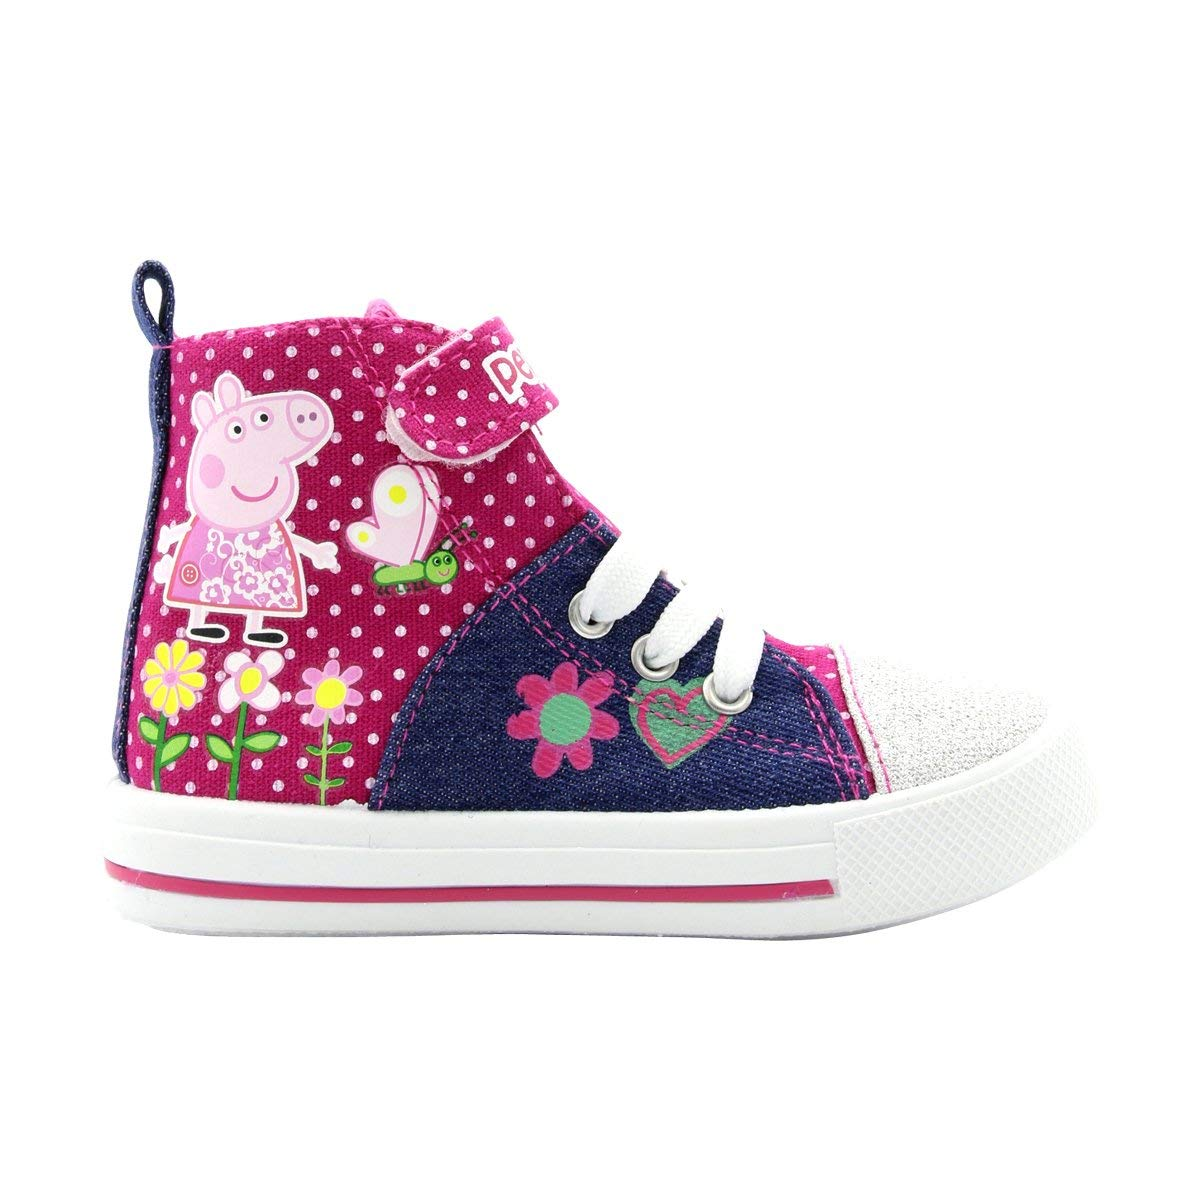 Peppa Pig Girls' Denim and Pink Toddler High Top Sneakers, Sizes 7, 8, 9, 10